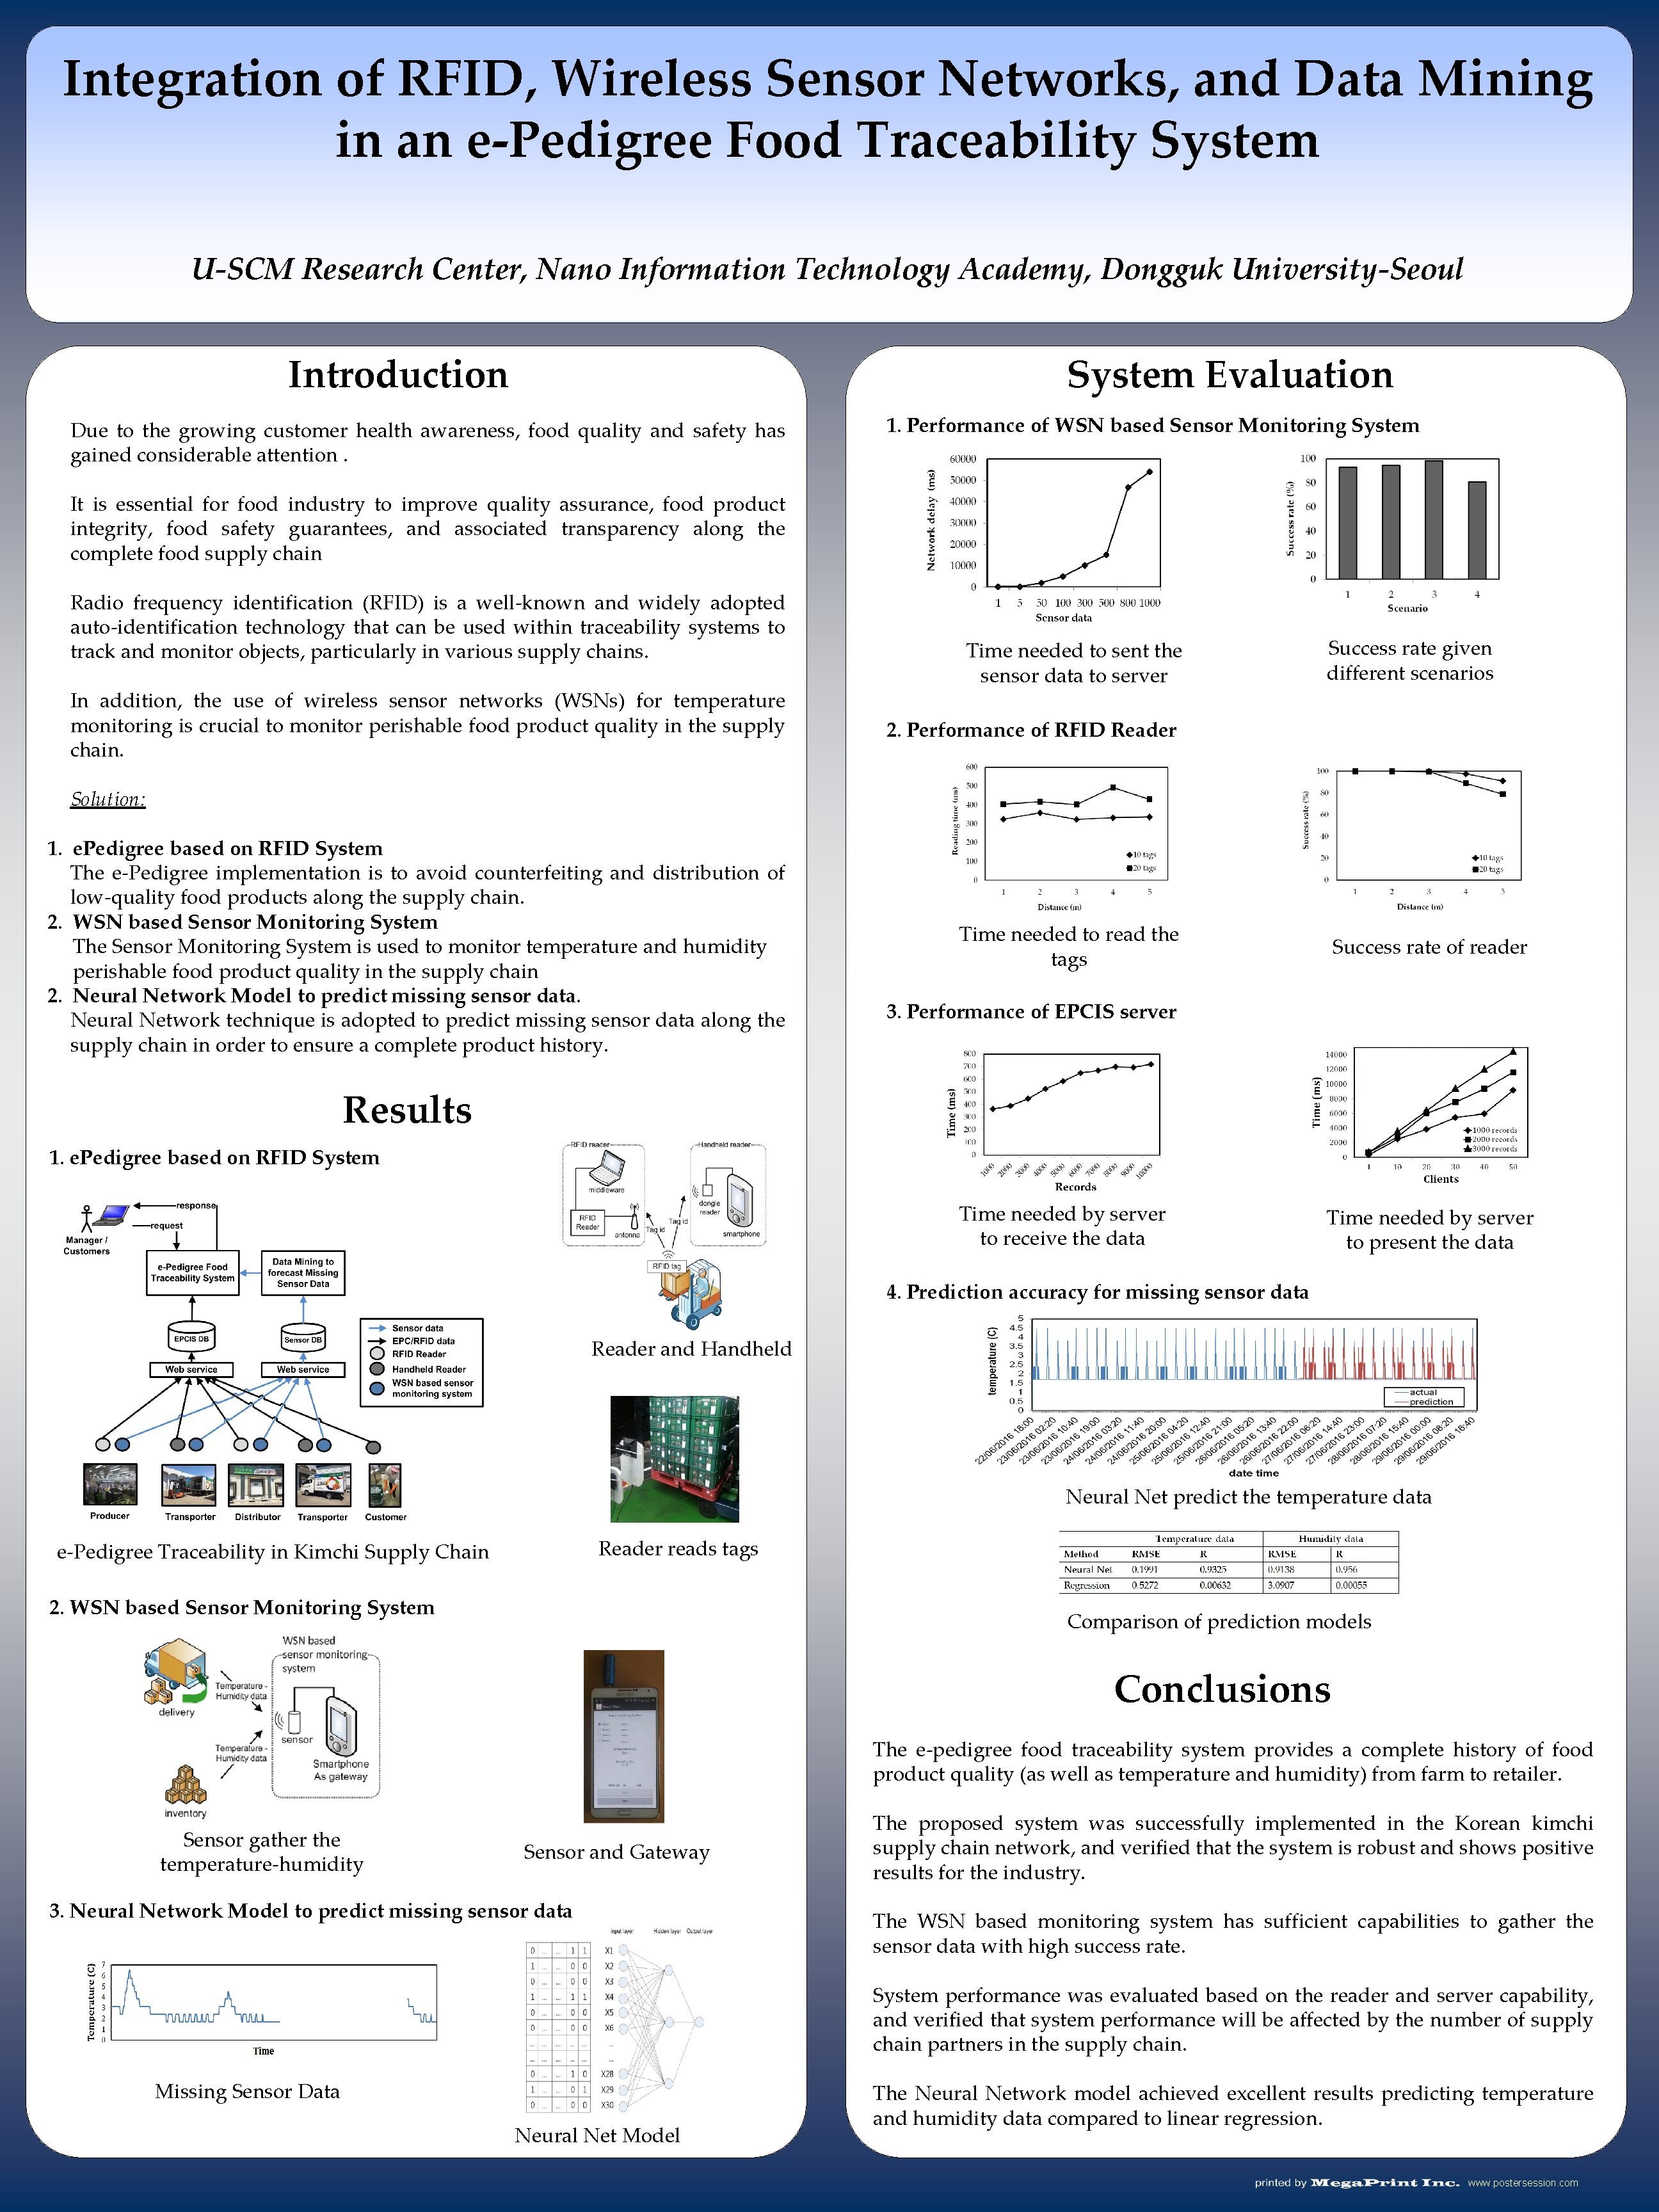 Integration of RFID, Wireless Sensor Networks, and Data Mining in an e-Pedigree Food Traceability